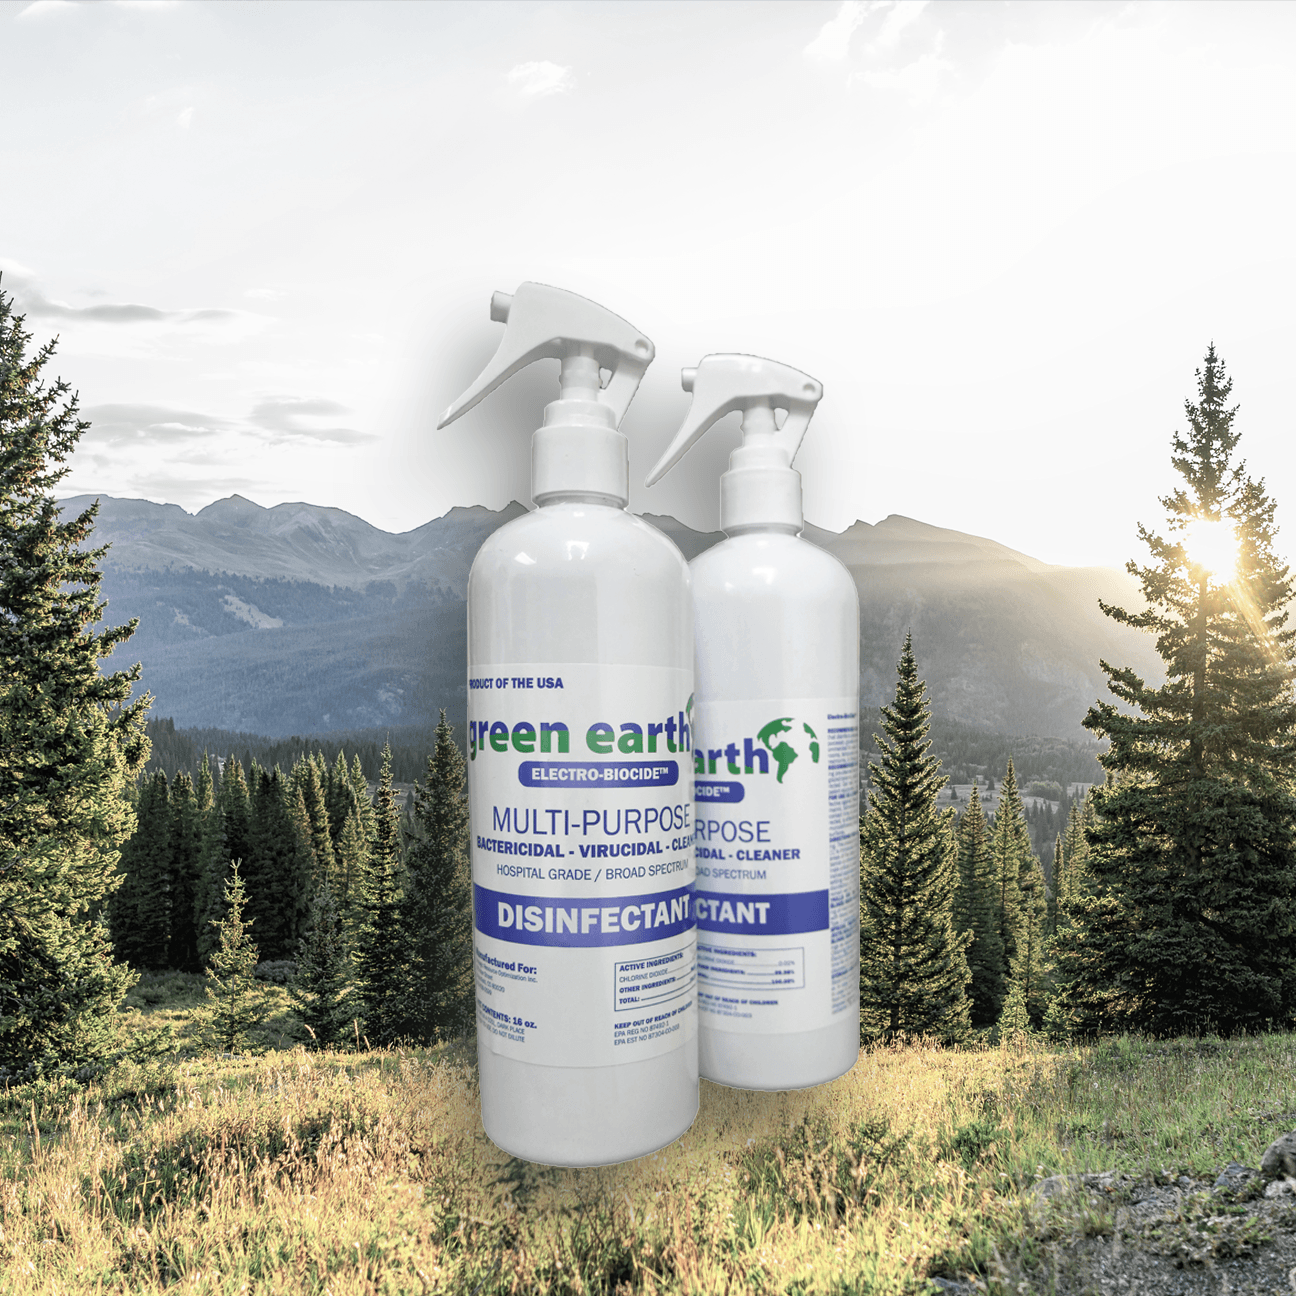 2 bottles of Green Earth household disinfectant outdoors